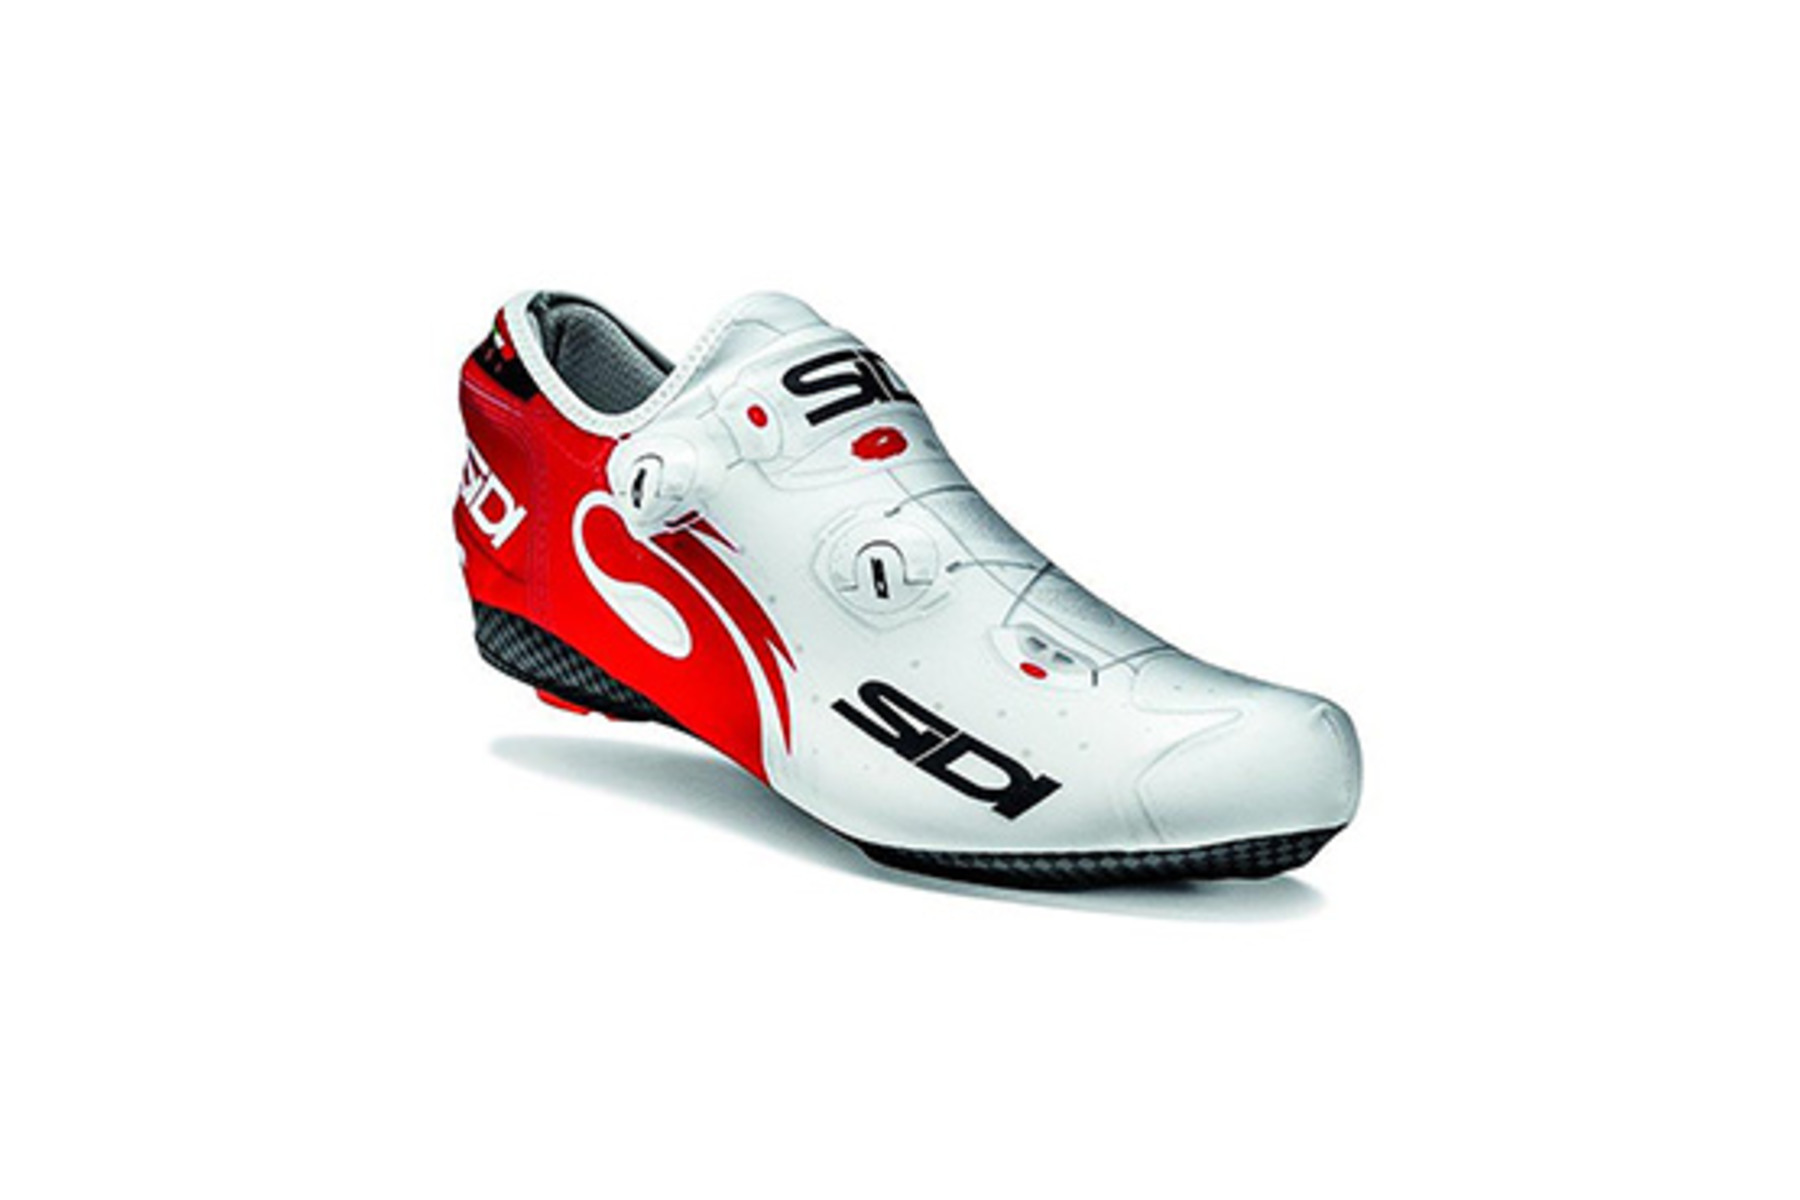 Buy SIDI WIRE overshoes | ROSE Bikes